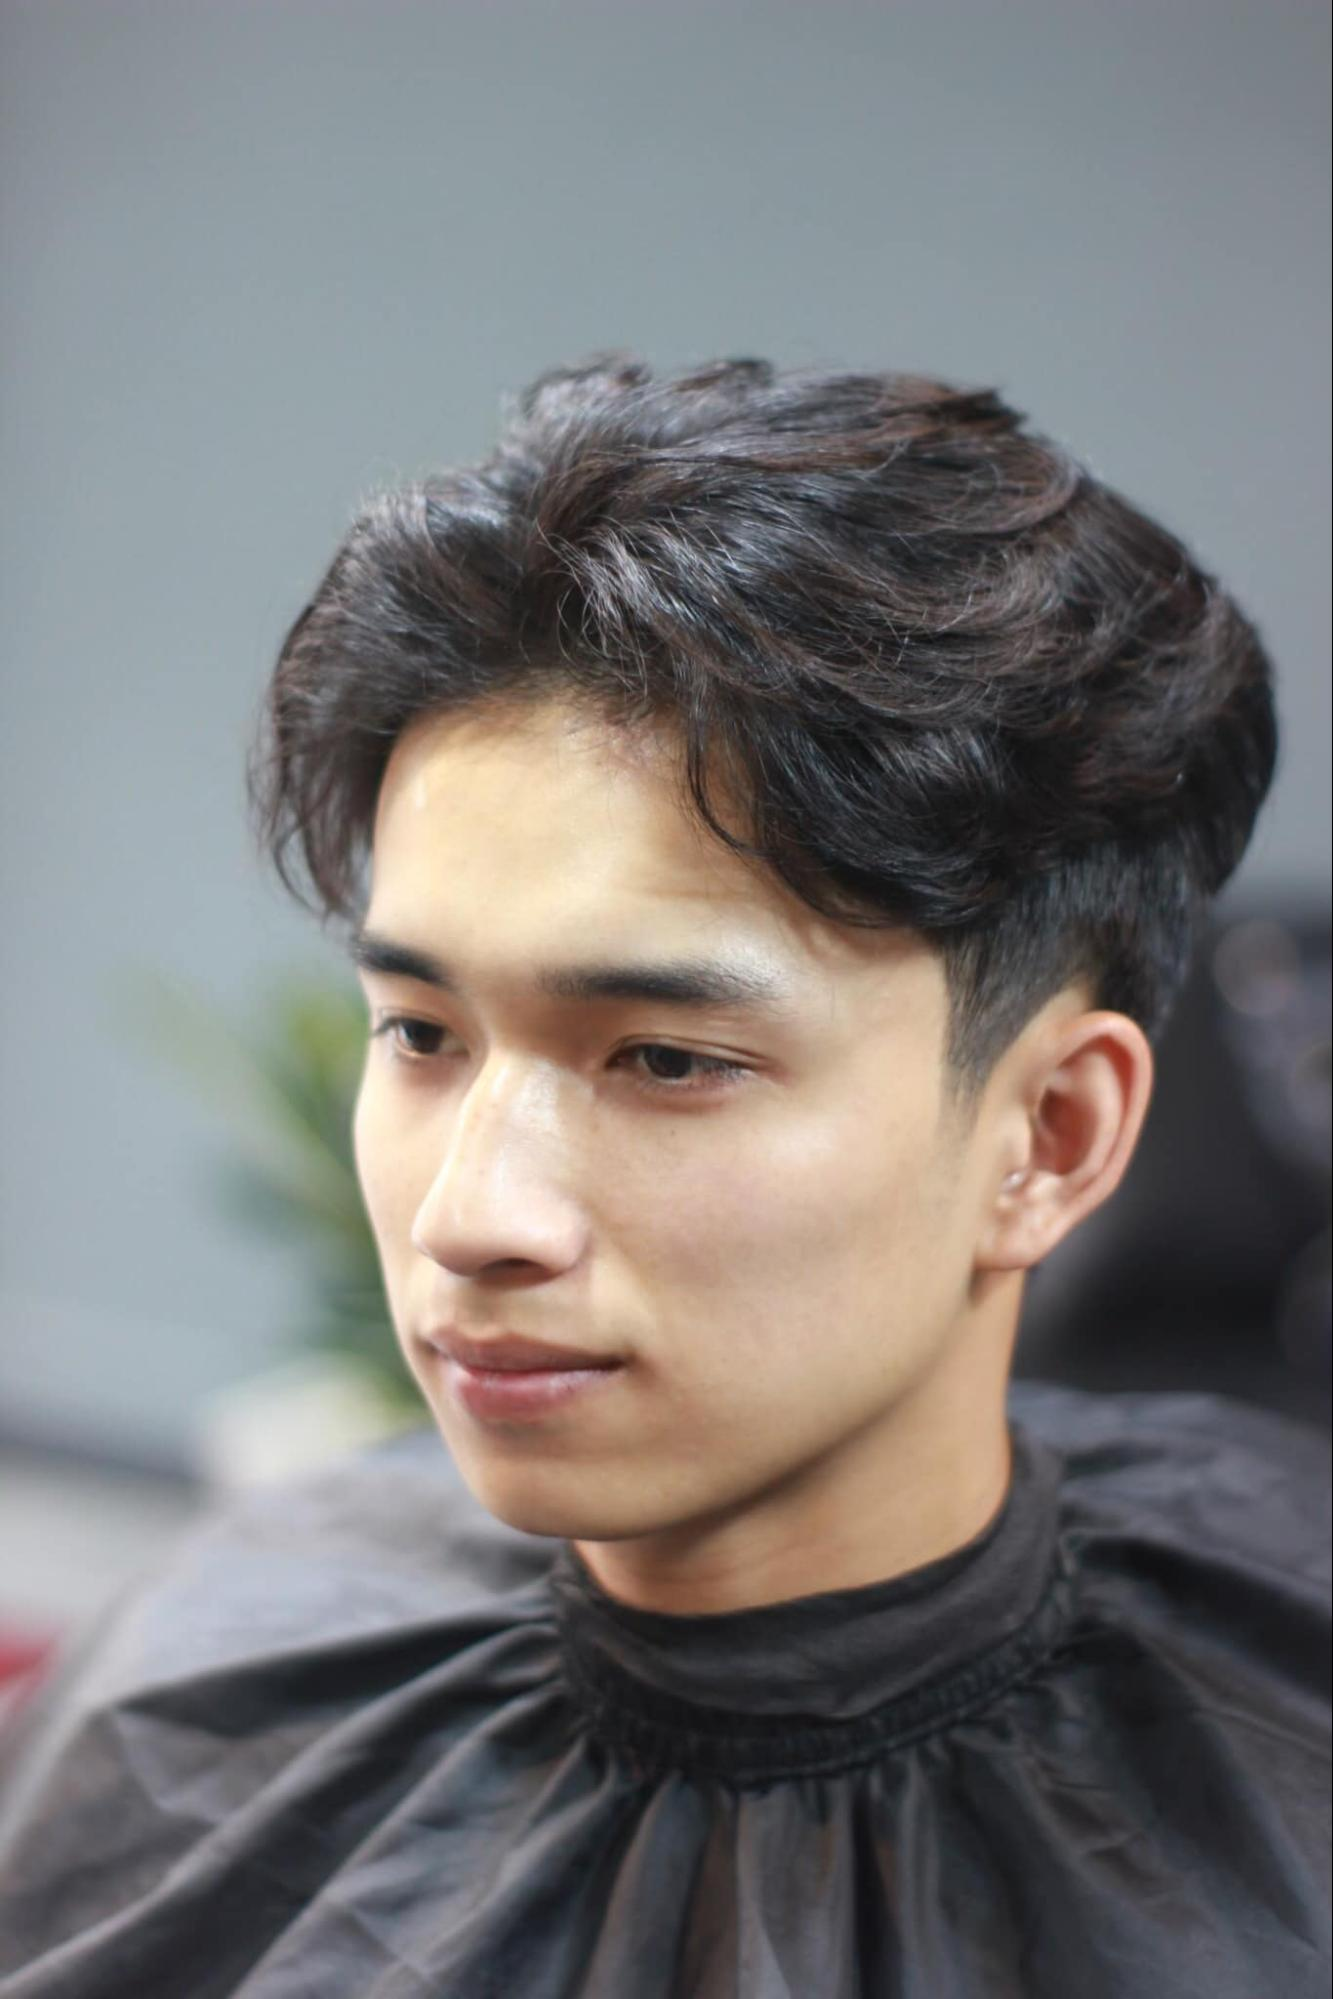 8 Perm Hairstyles For Men For Singaporean Guys Who Want Volume Or Korean Waves